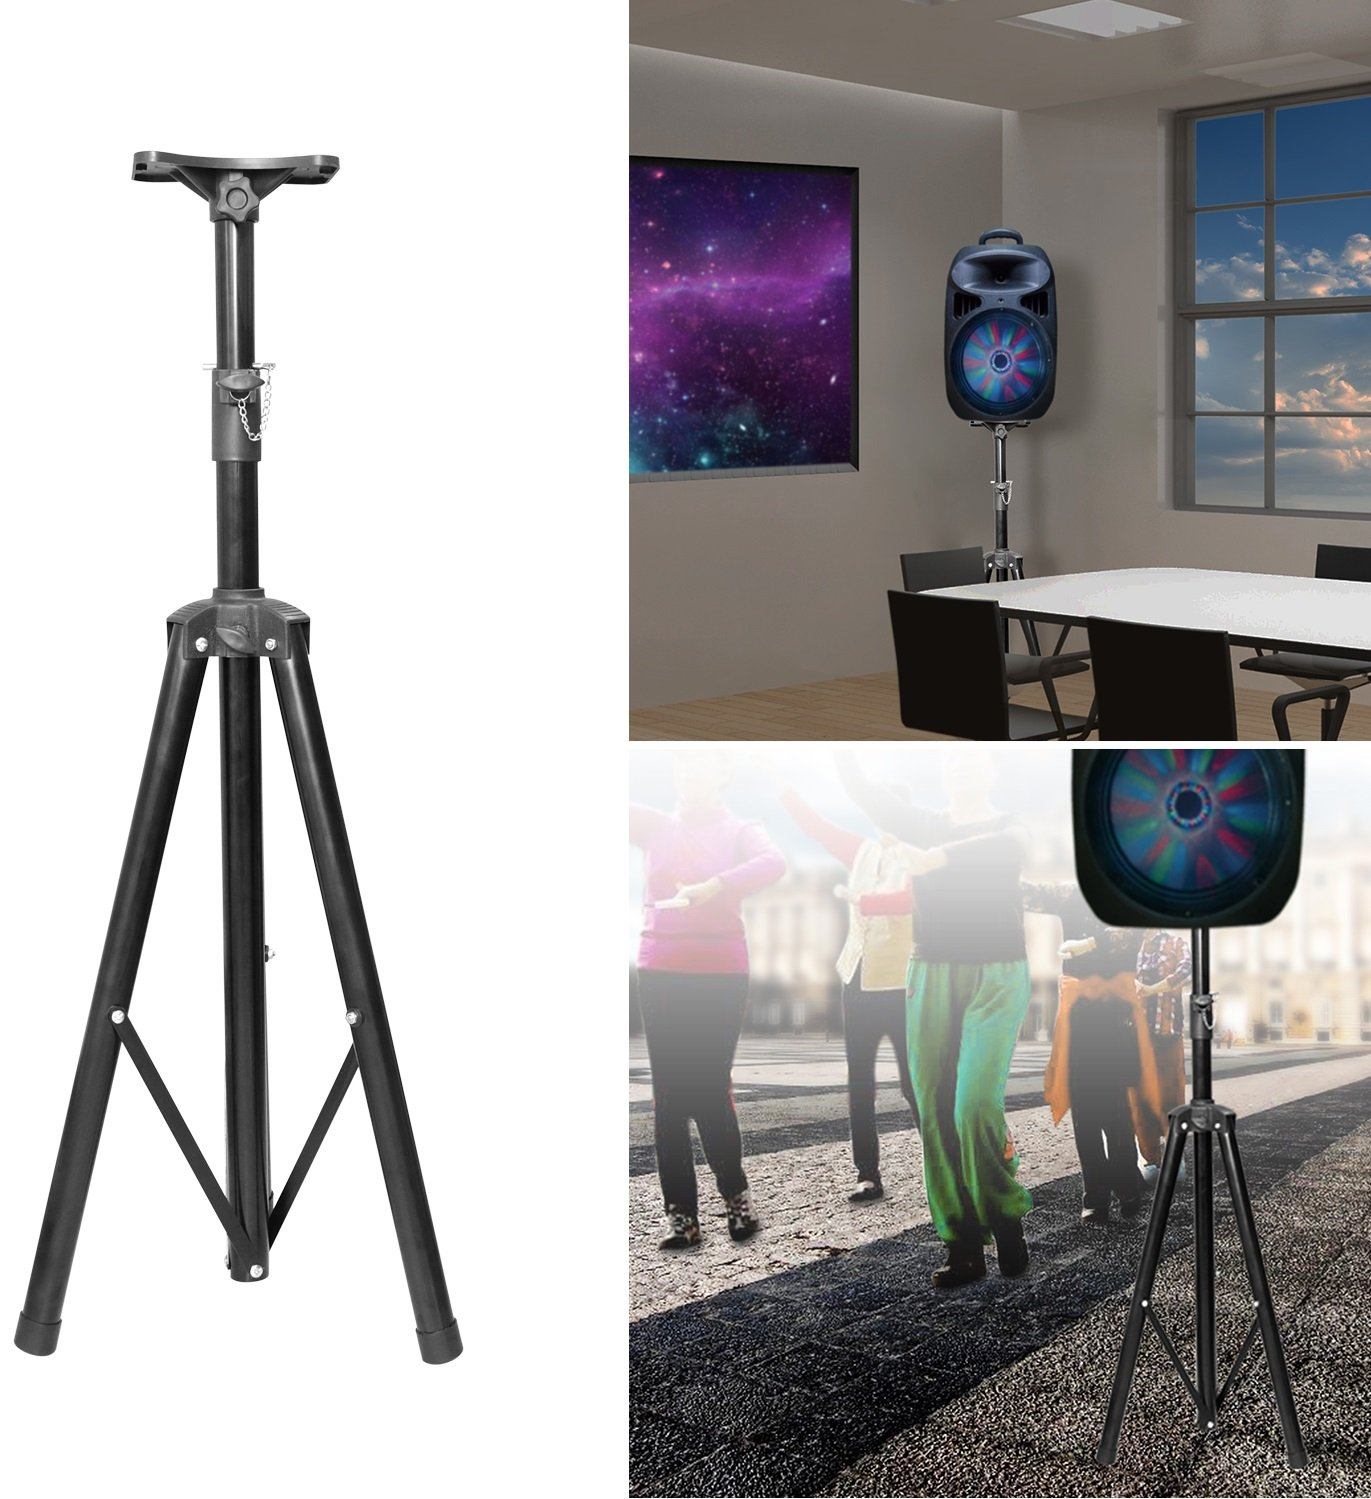 GPCT [Universal] Speaker [Corrosion Resistant] Adjustable Tripod Stand. [Heavy Duty] Holds Up To 60KG/132LBS. Easy Storage [Non Slip] 4 Different Heights DJ PA Speaker Stand. [BLACK] by GPCT (Image #1)